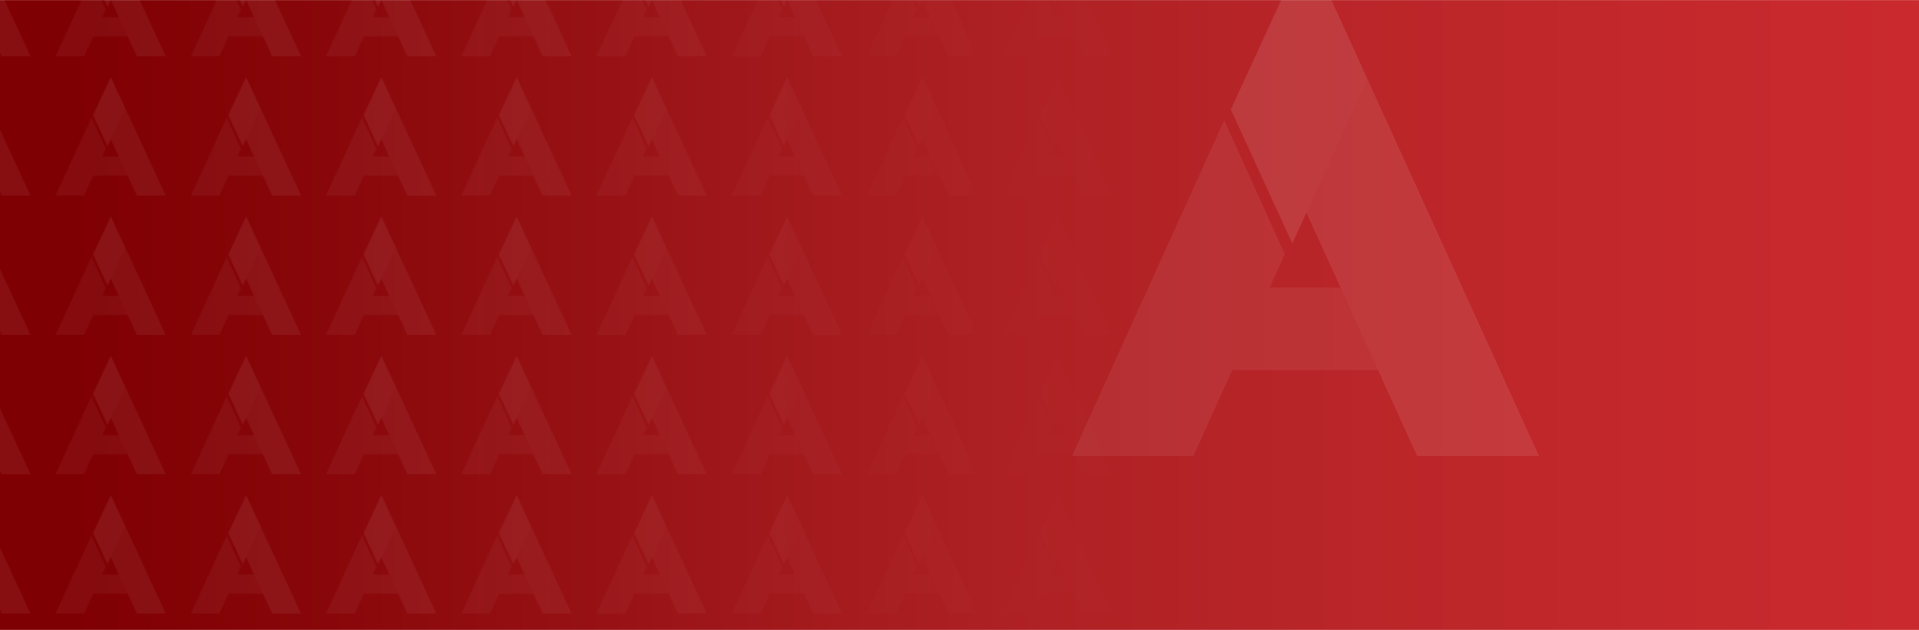 a-1 logo banner in red